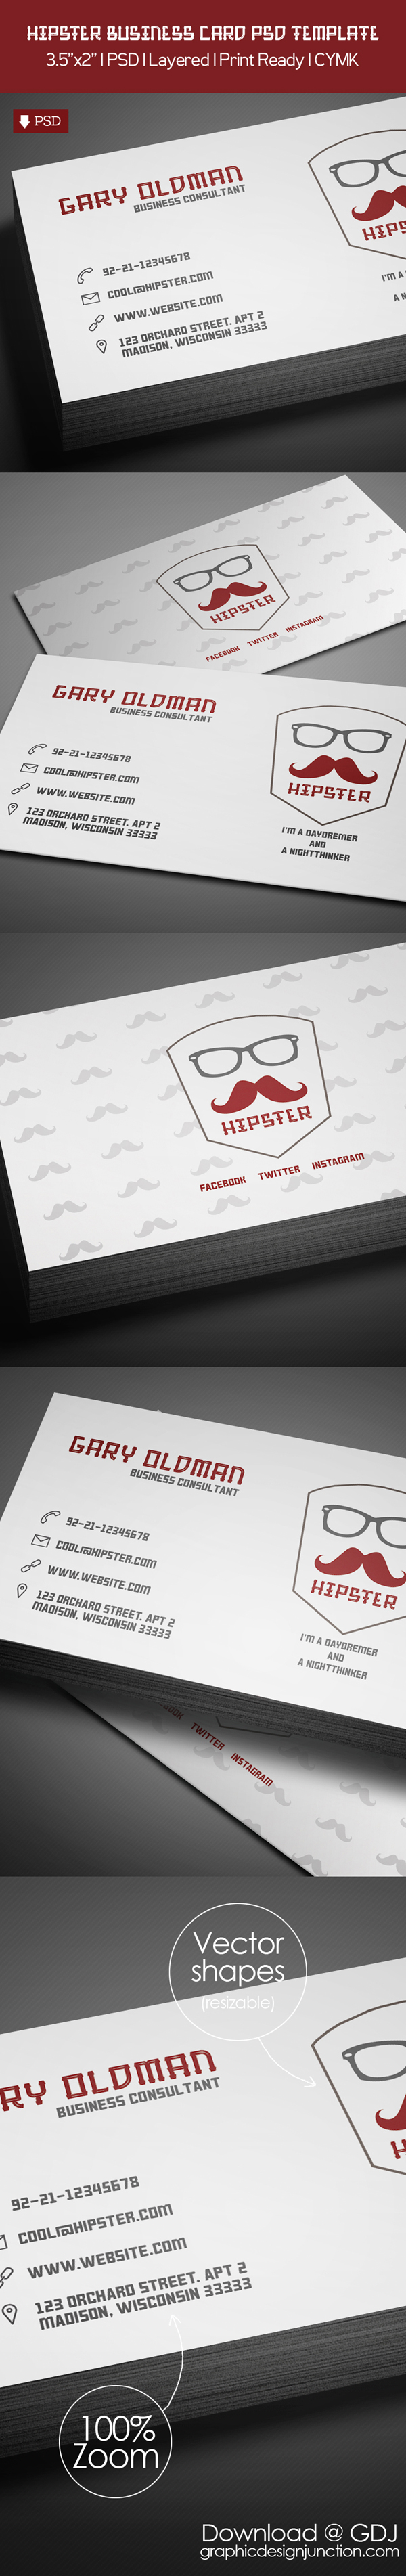 freebie – hipster business card psd template freebies